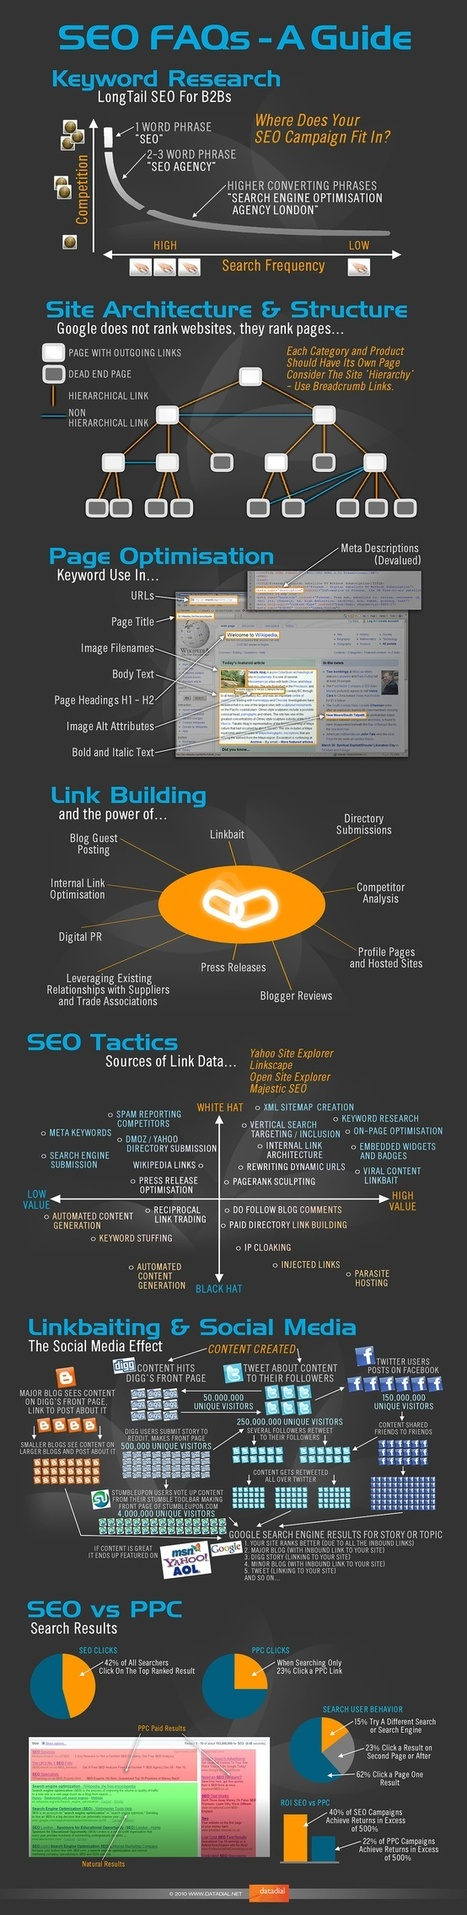 SEO FAQ's Guide [Infographic] | Digital Marketing with WSI etc. | Scoop.it